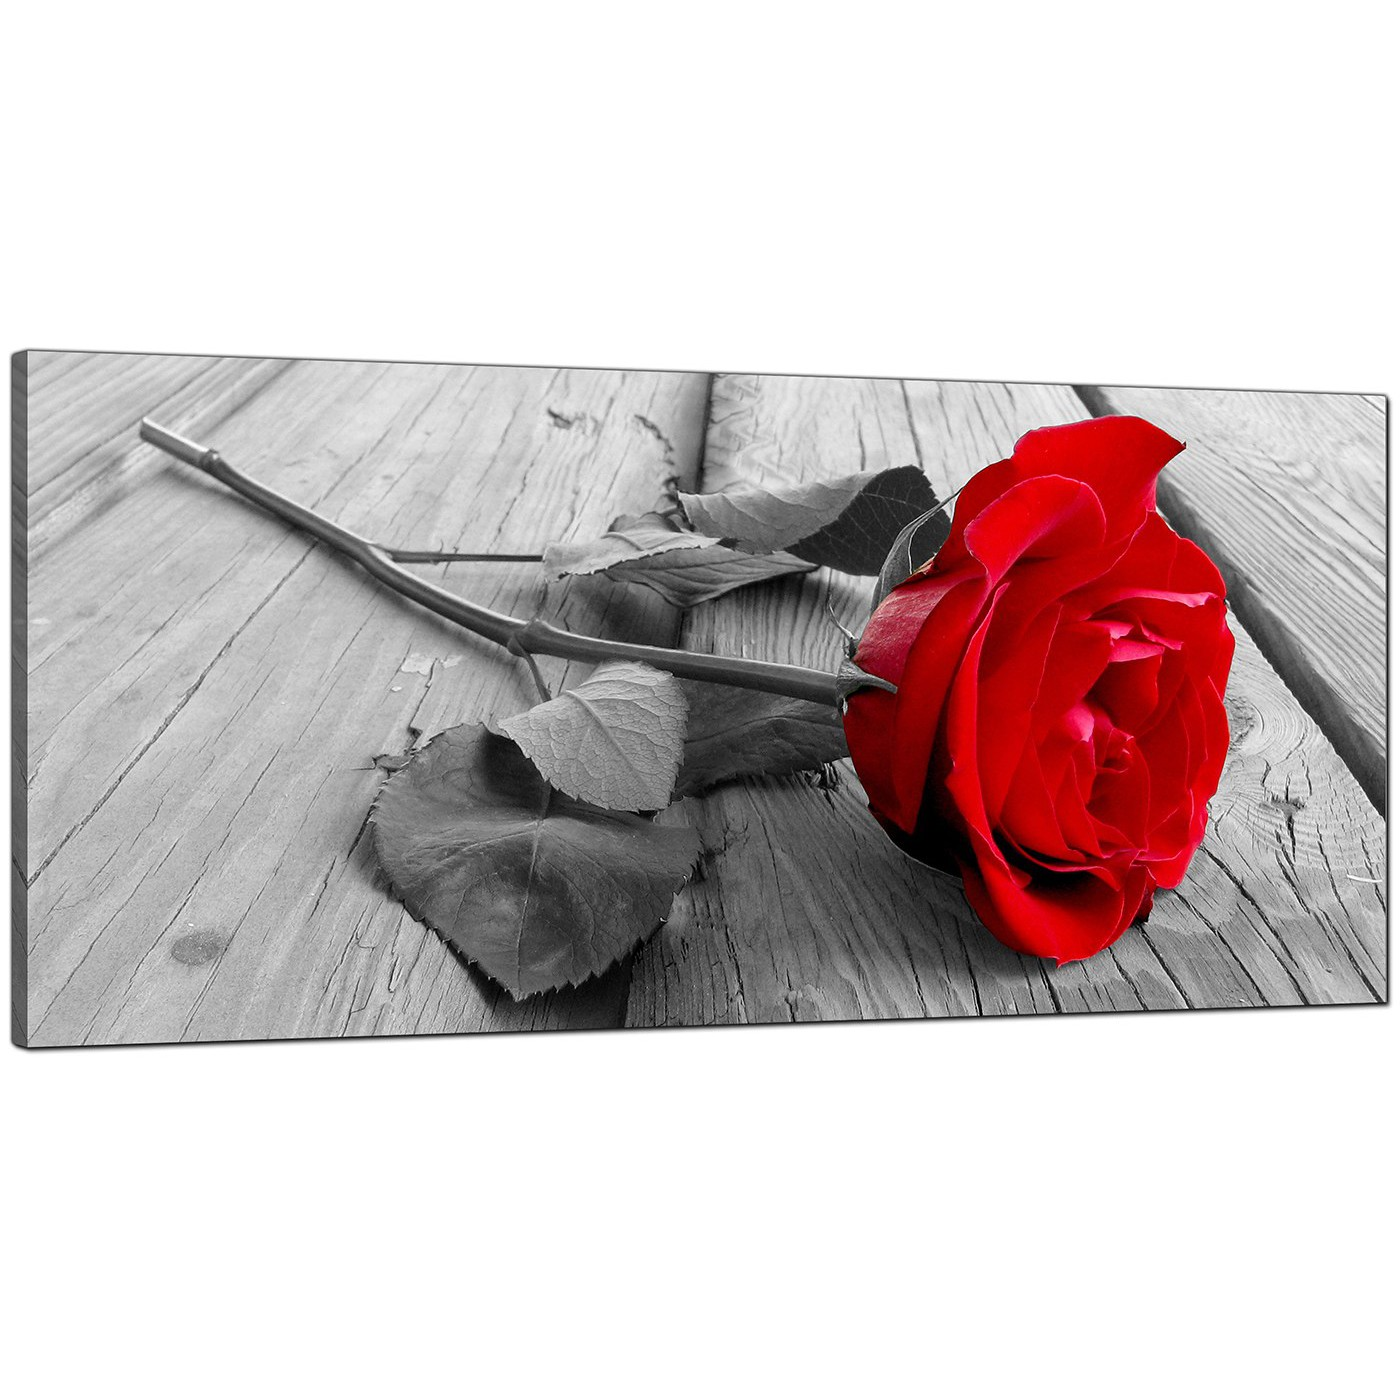 Cheap black and white canvas prints of a red rose flower display gallery item 4 red living room large canvas of flowers display gallery item 5 izmirmasajfo Image collections